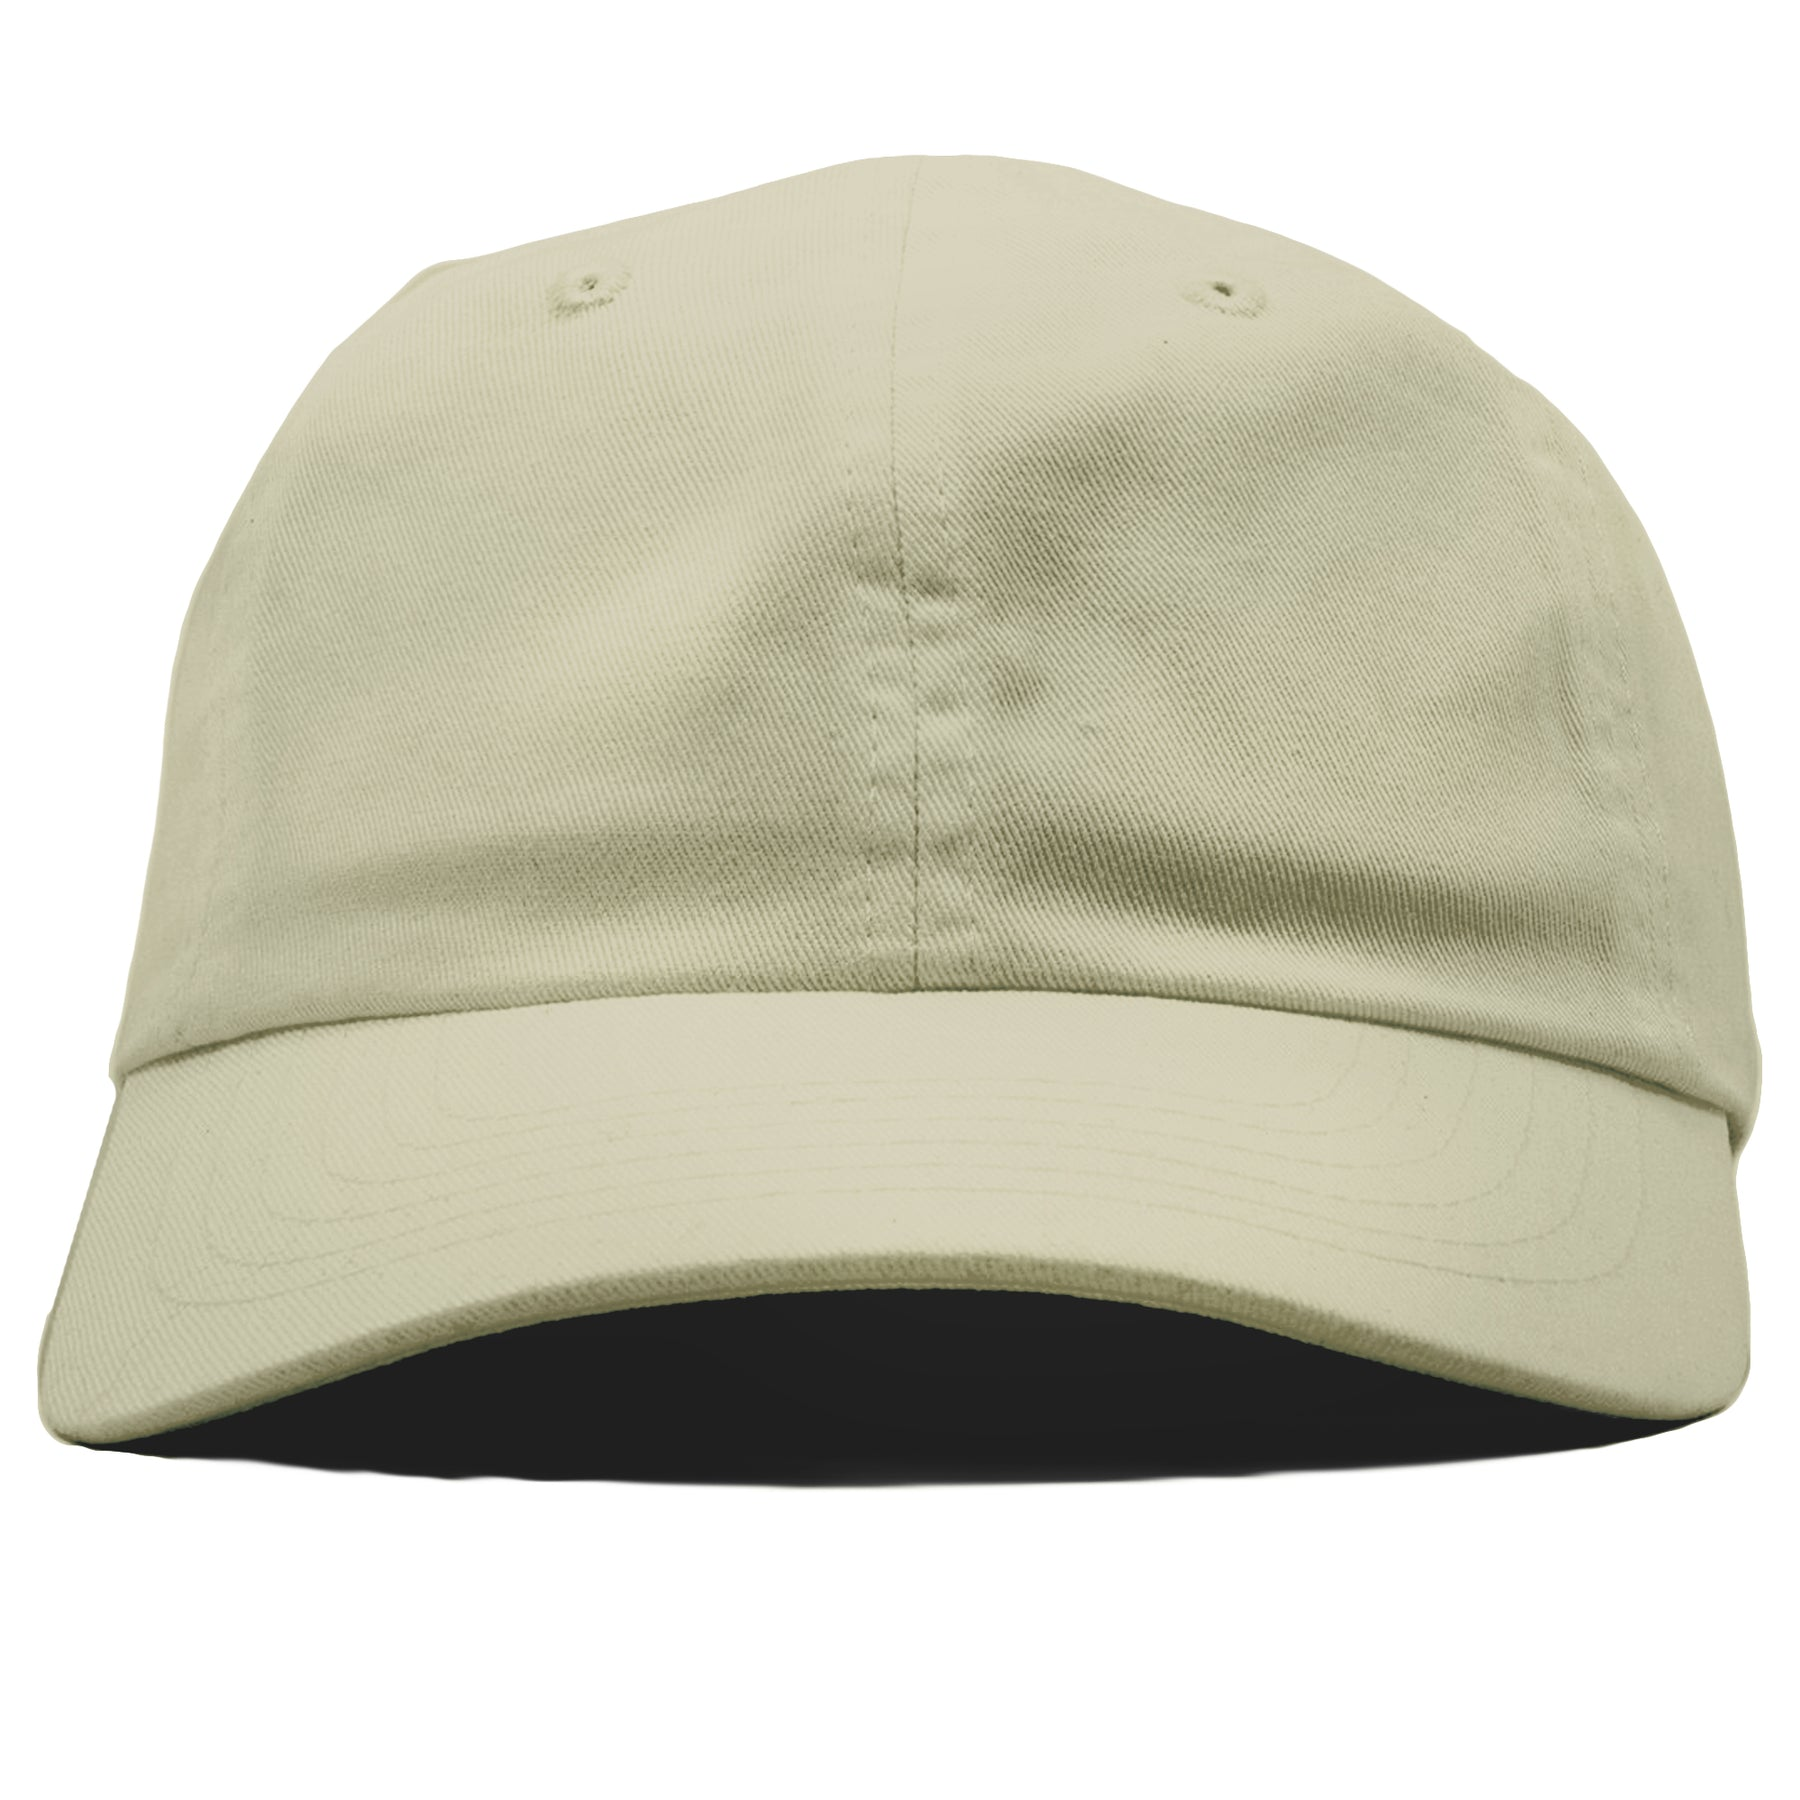 e3286e4d125 The blank ivory dad hat has no design on the front